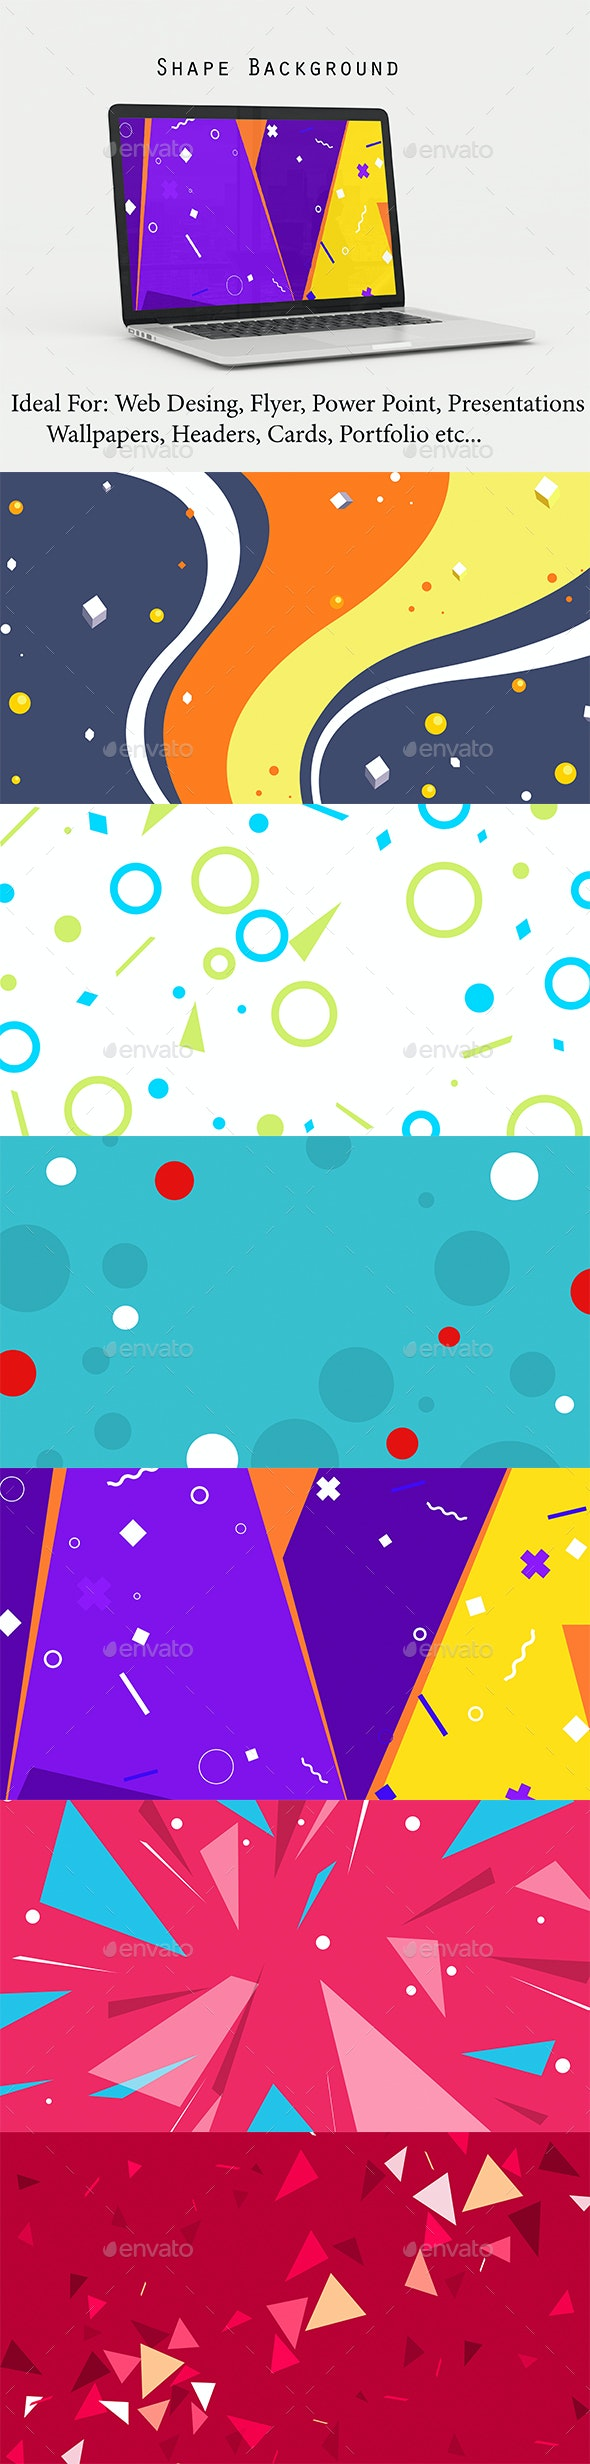 Shape Background - Abstract Backgrounds